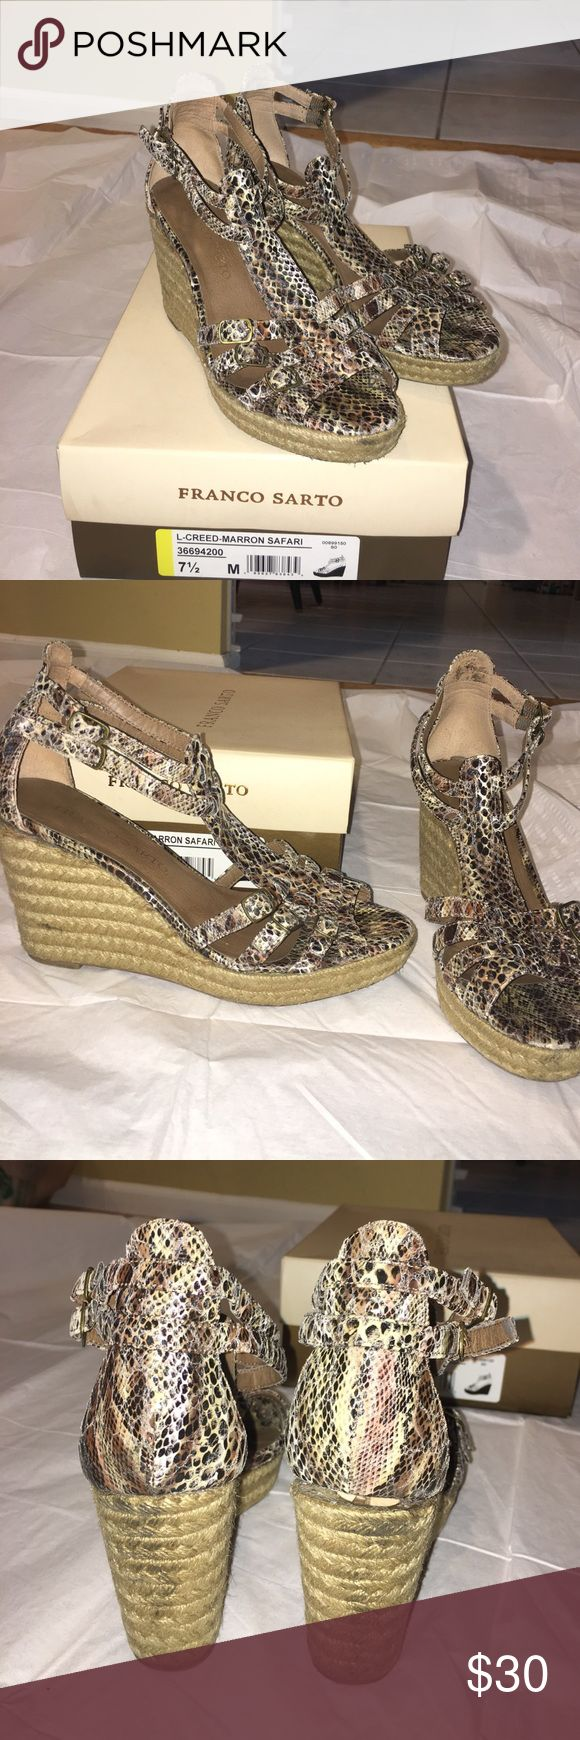 Franco Sarto Animal Print Espadrilles Size 7.5 Women's size 7.5, animal print espadrilles, 2 buckles around ankle, 3.5 inch heel, 1.5 inch platform, no damage but slight wear and tear, comes with original box Franco Sarto Shoes Espadrilles